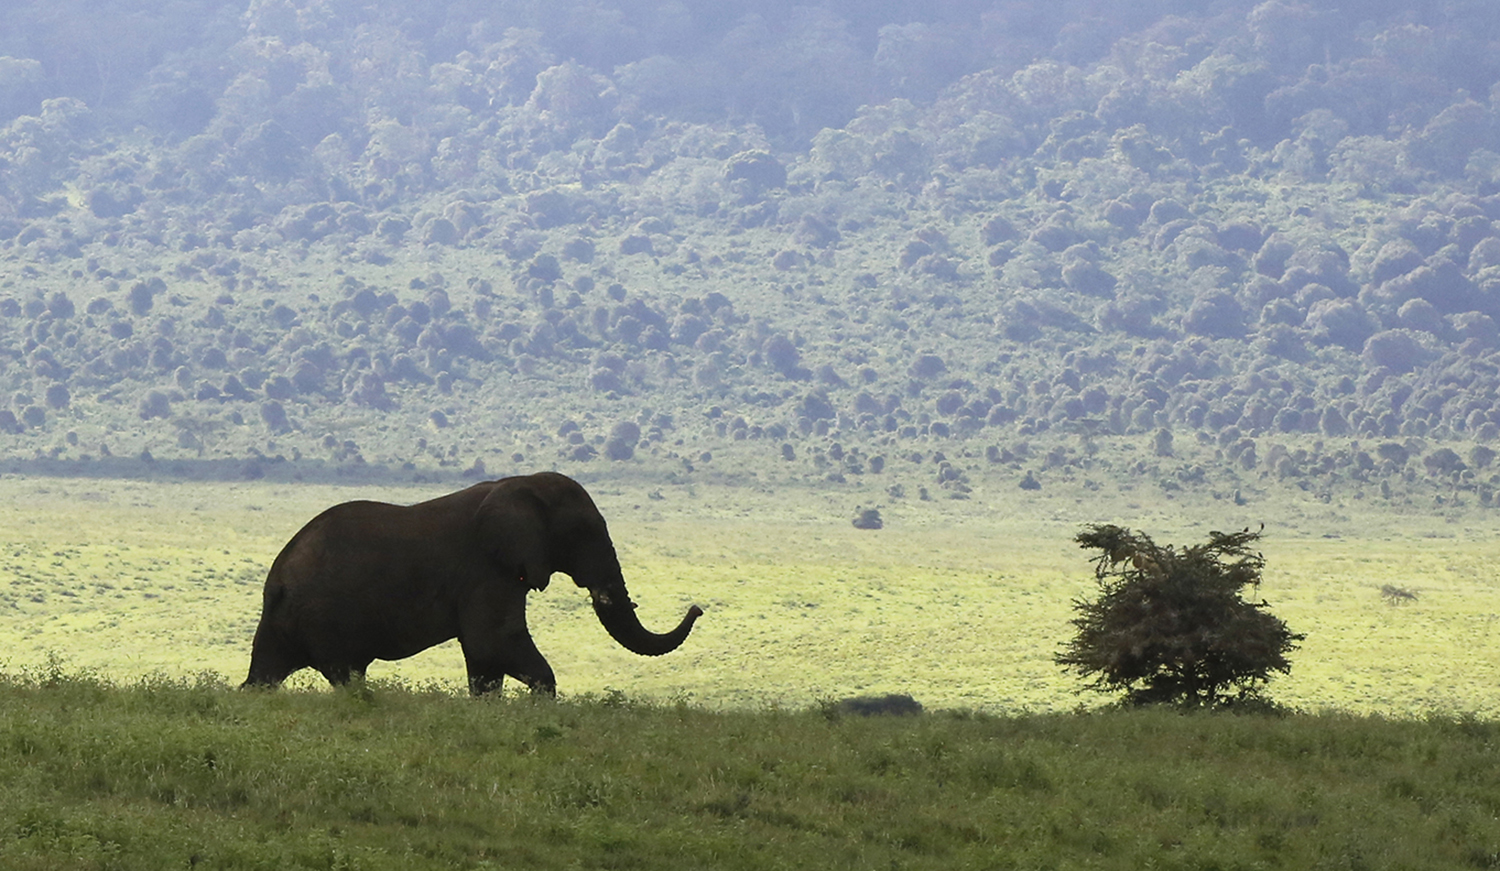 Elephant exploring the Crater